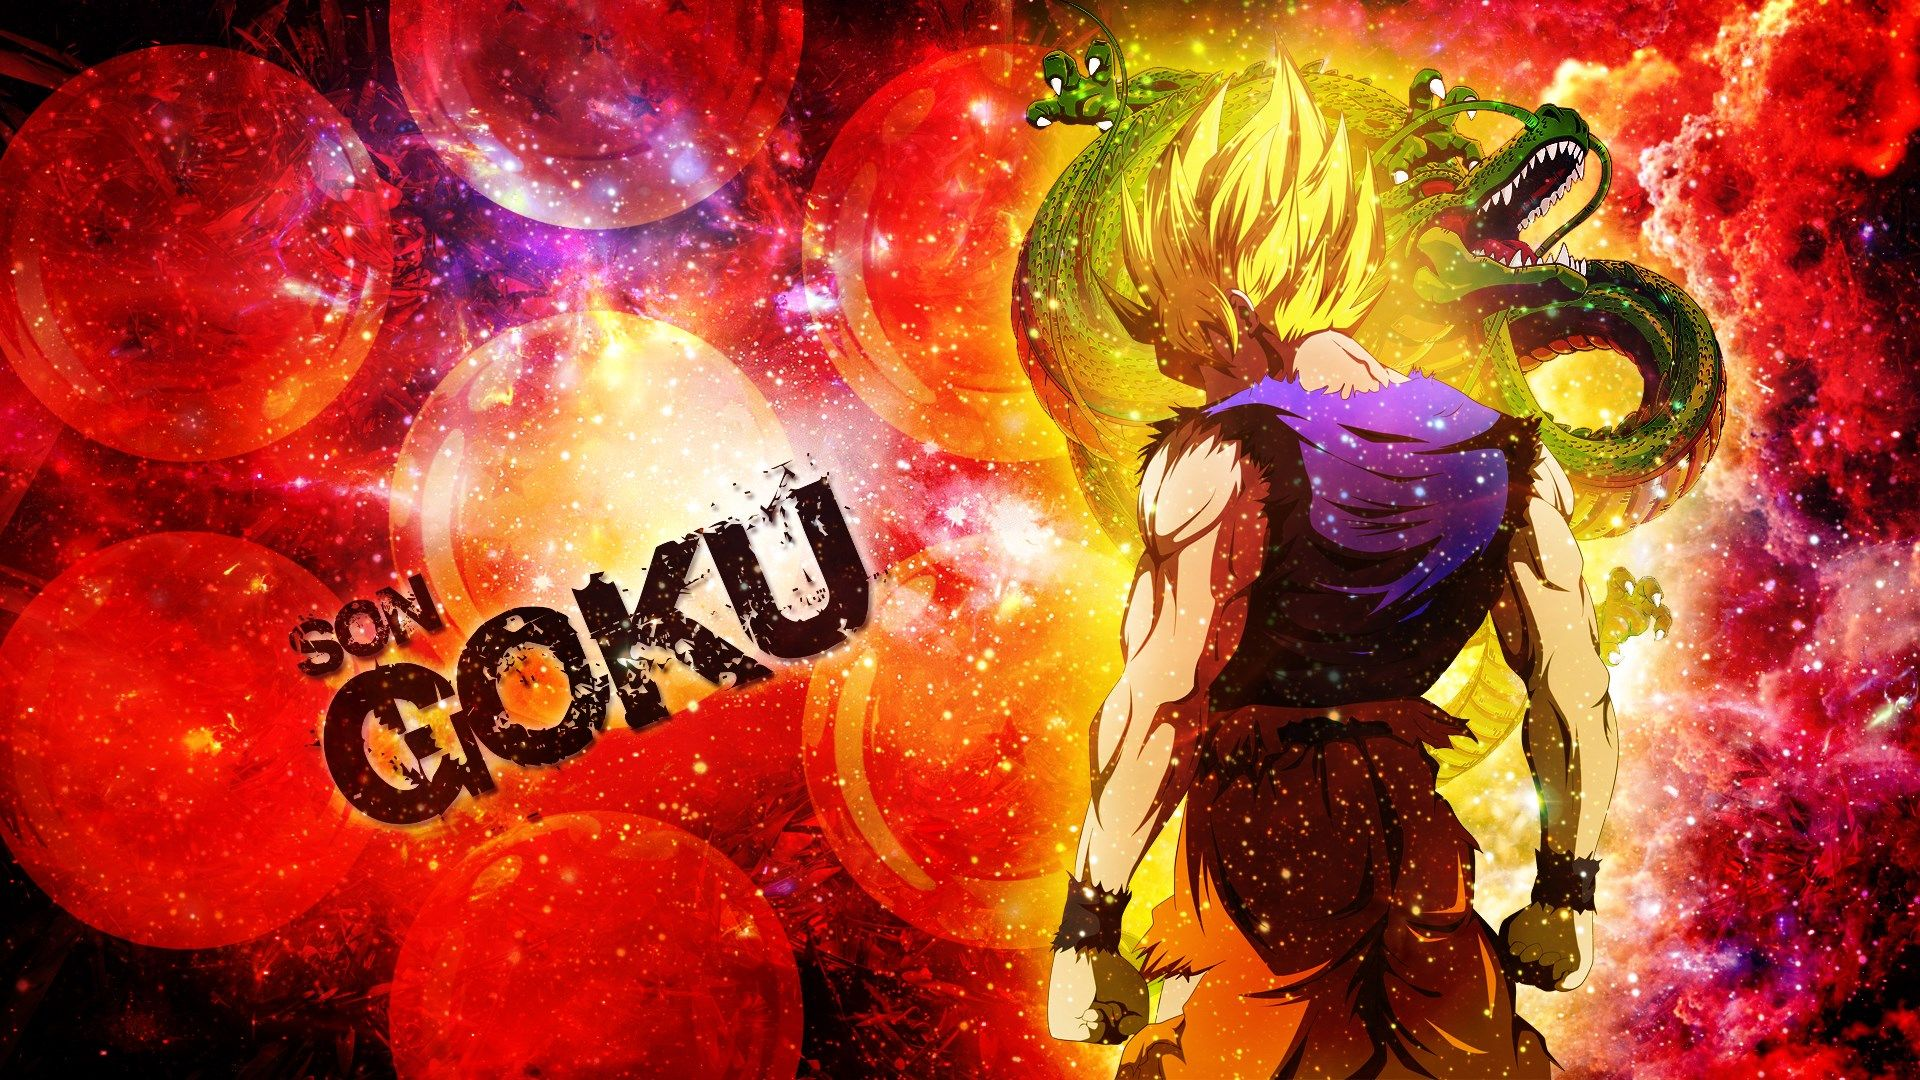 dragon ball z wallpaper pack 1080p hd - dragon ball z category